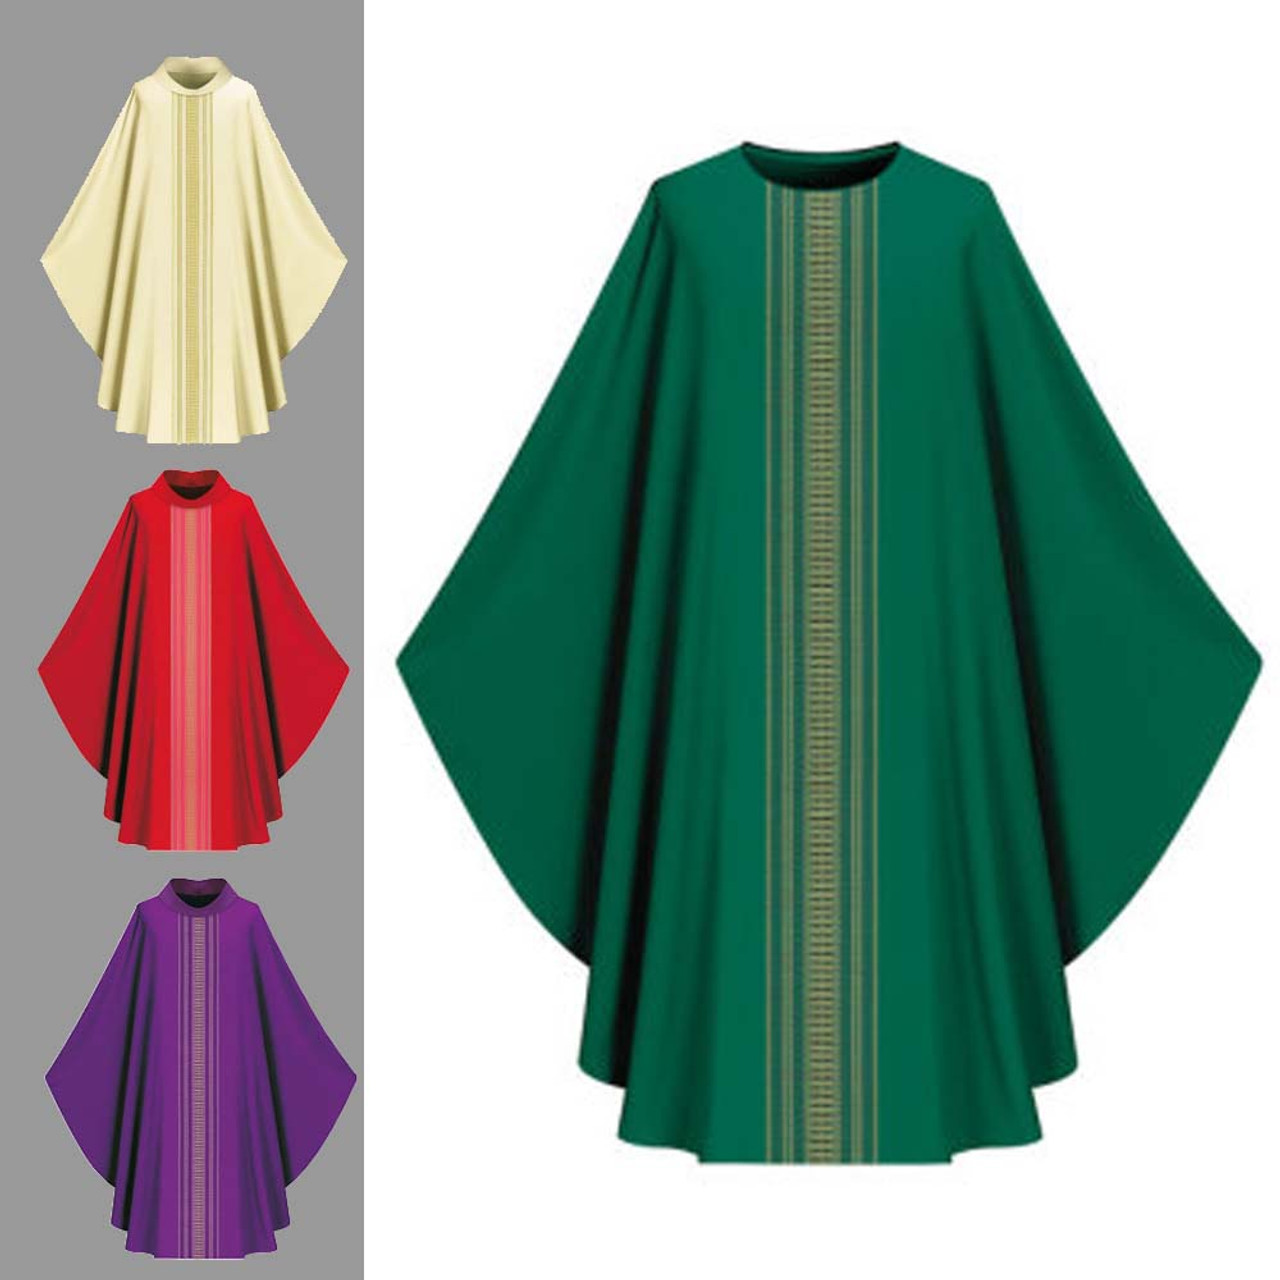 3111 Green Chasuble with Roll Collar